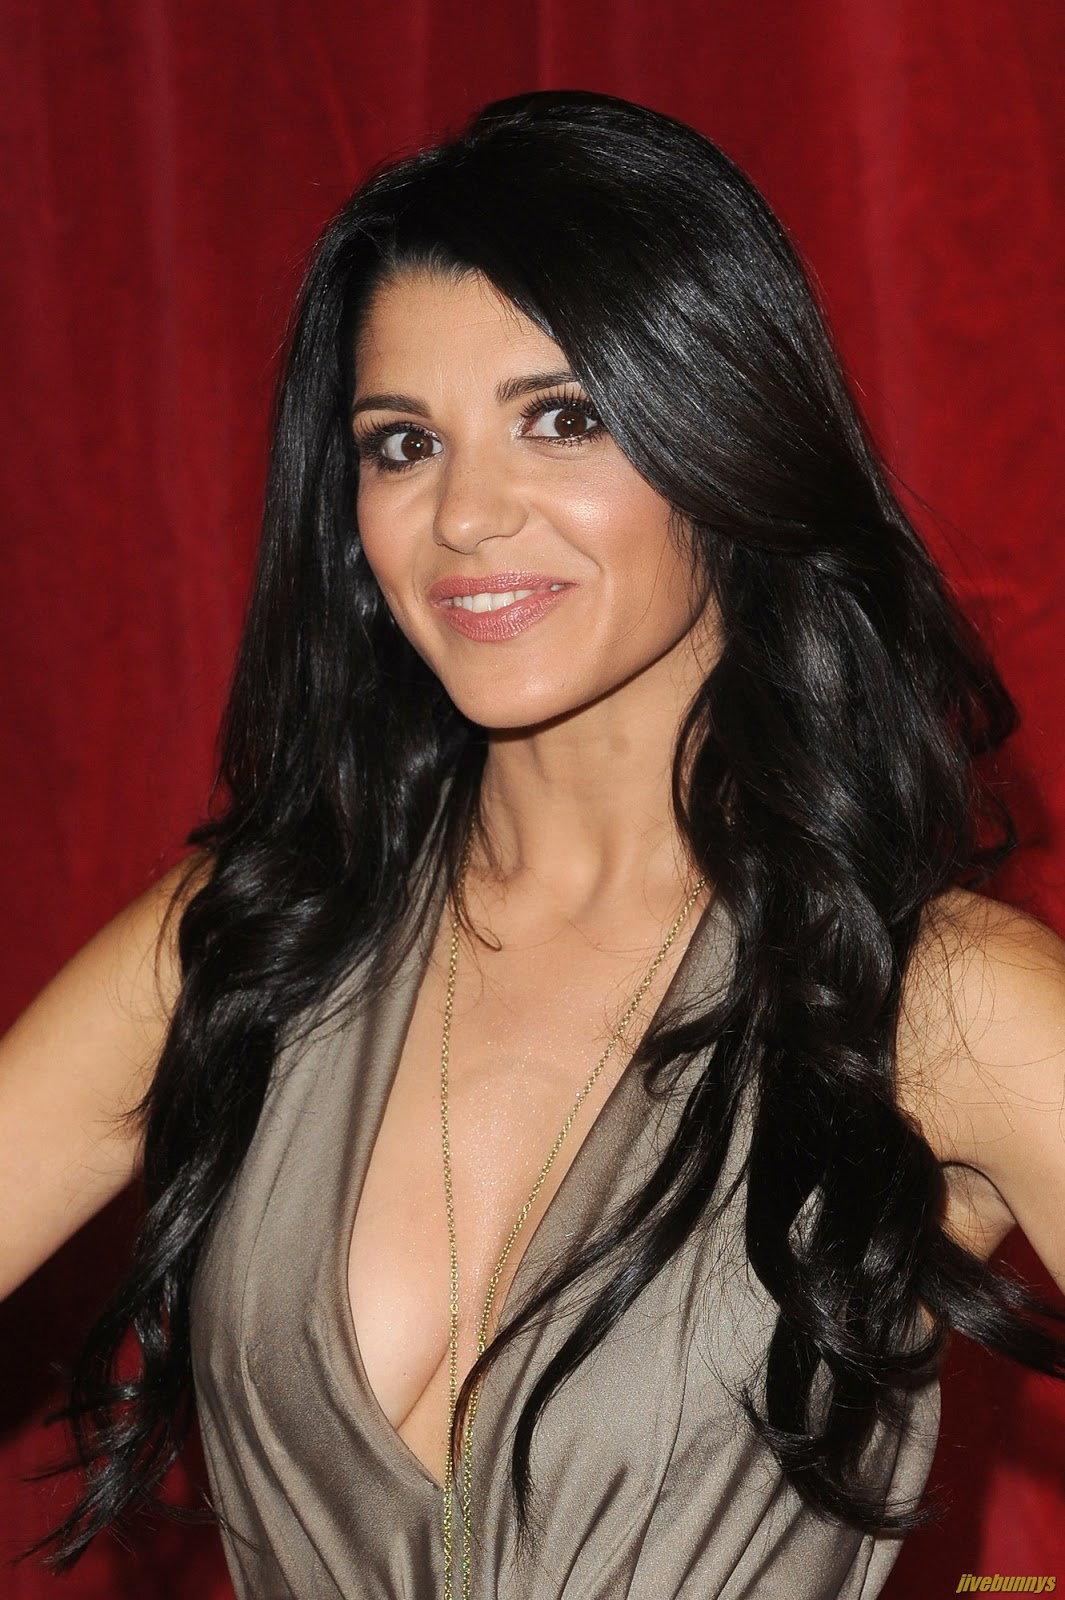 Natalie anderson emmerdale actress photo gallery 2